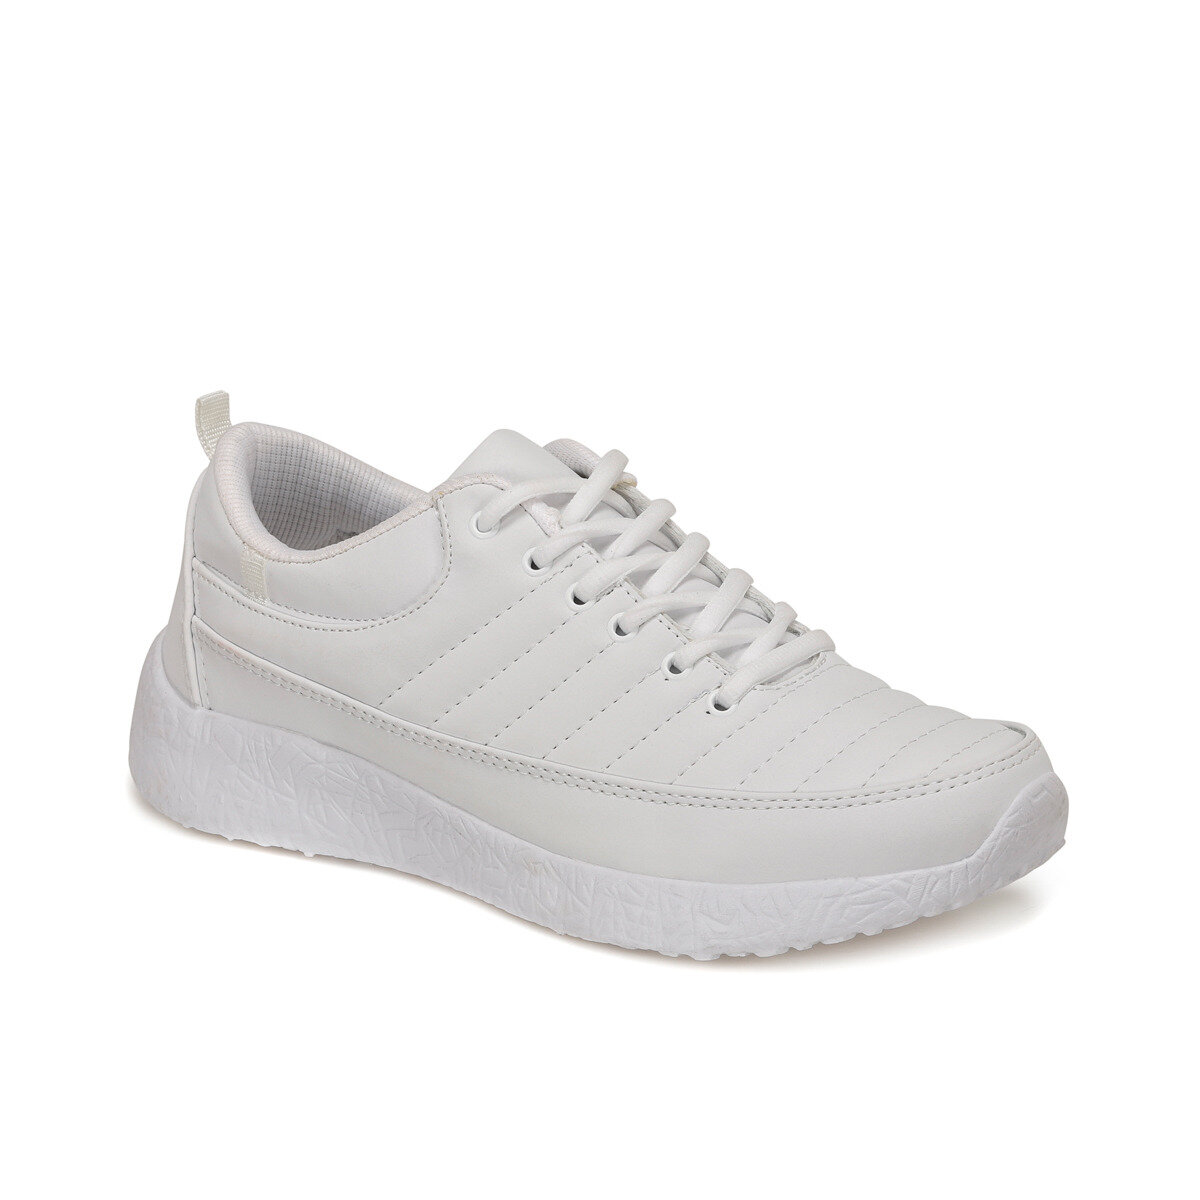 FLO EC-1050 White Male Shoes Forester